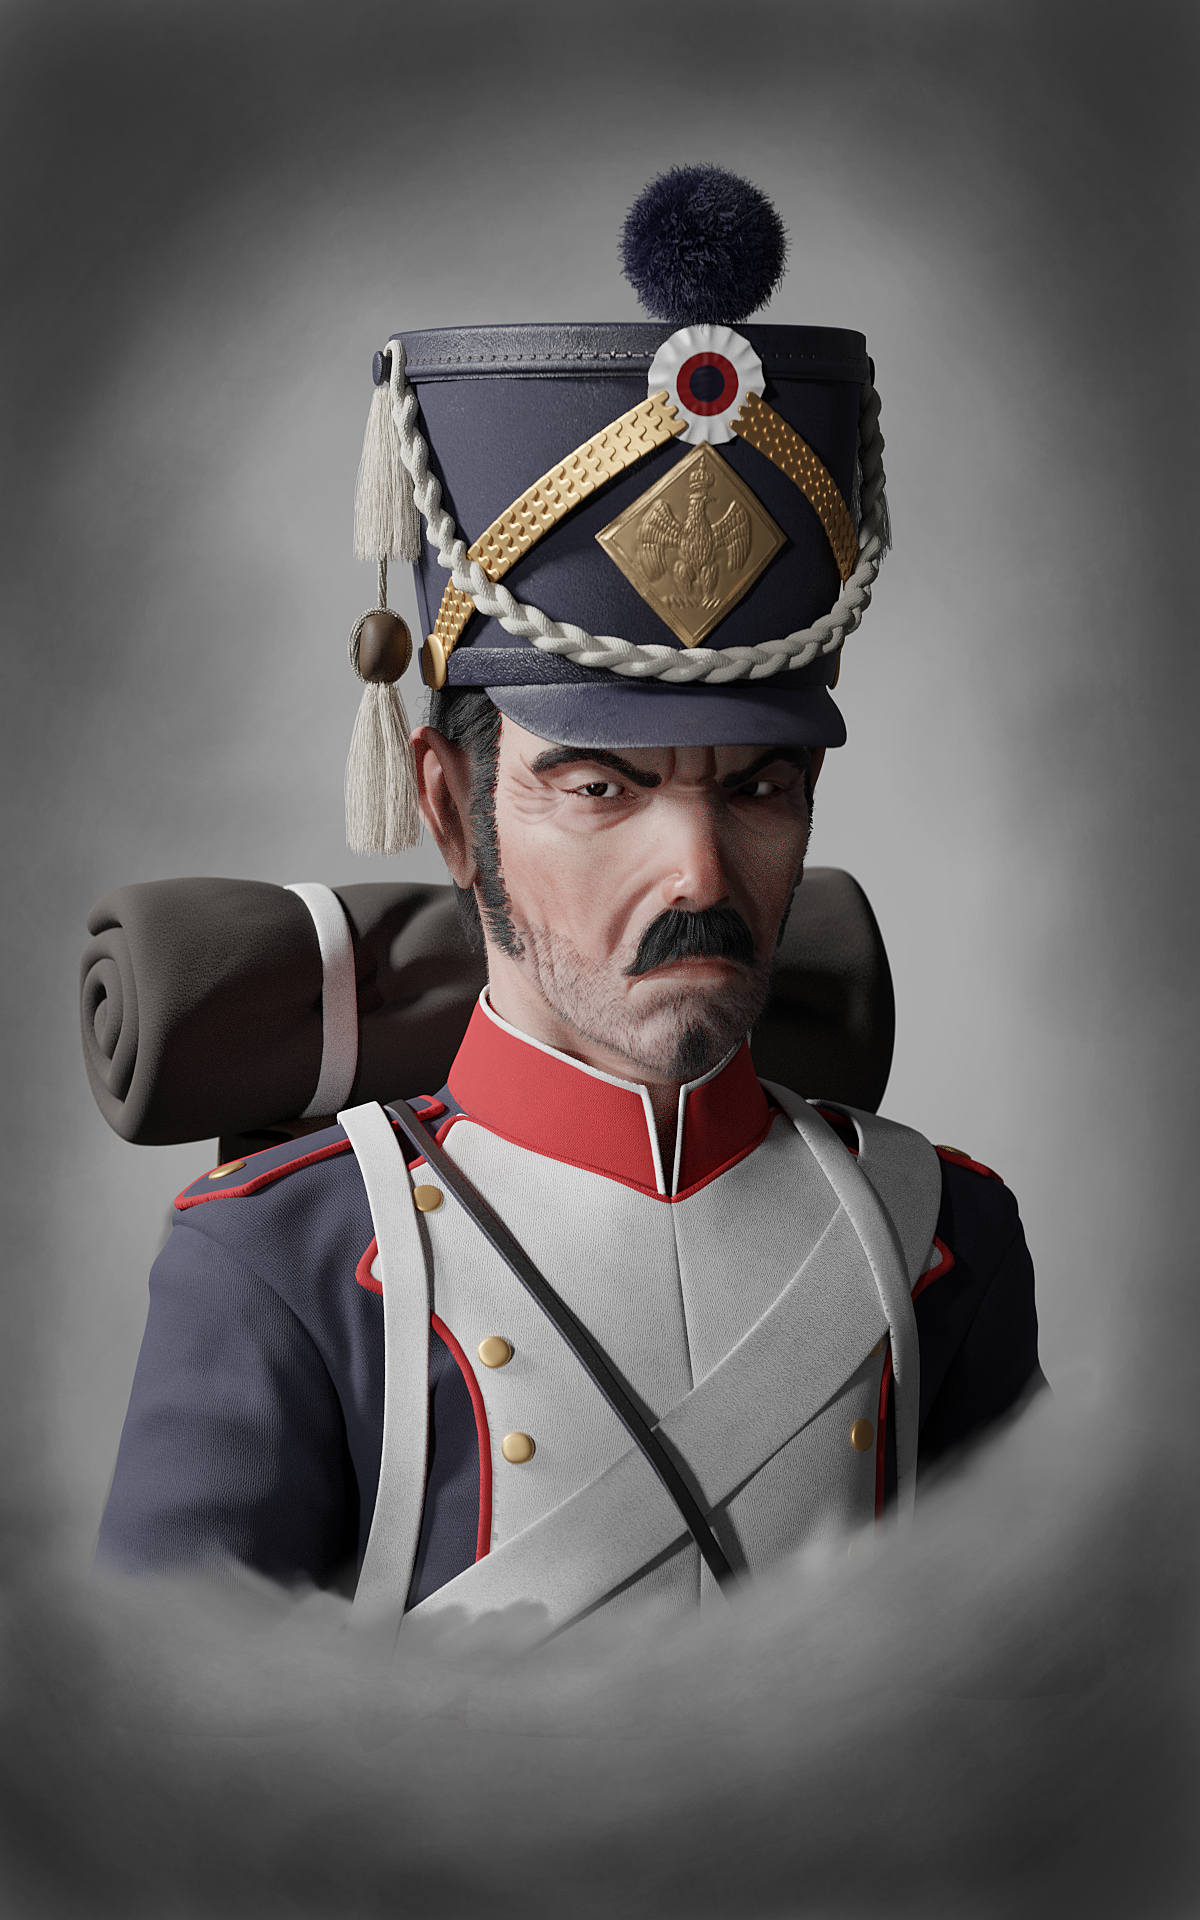 Old work: Napoleonic soldier